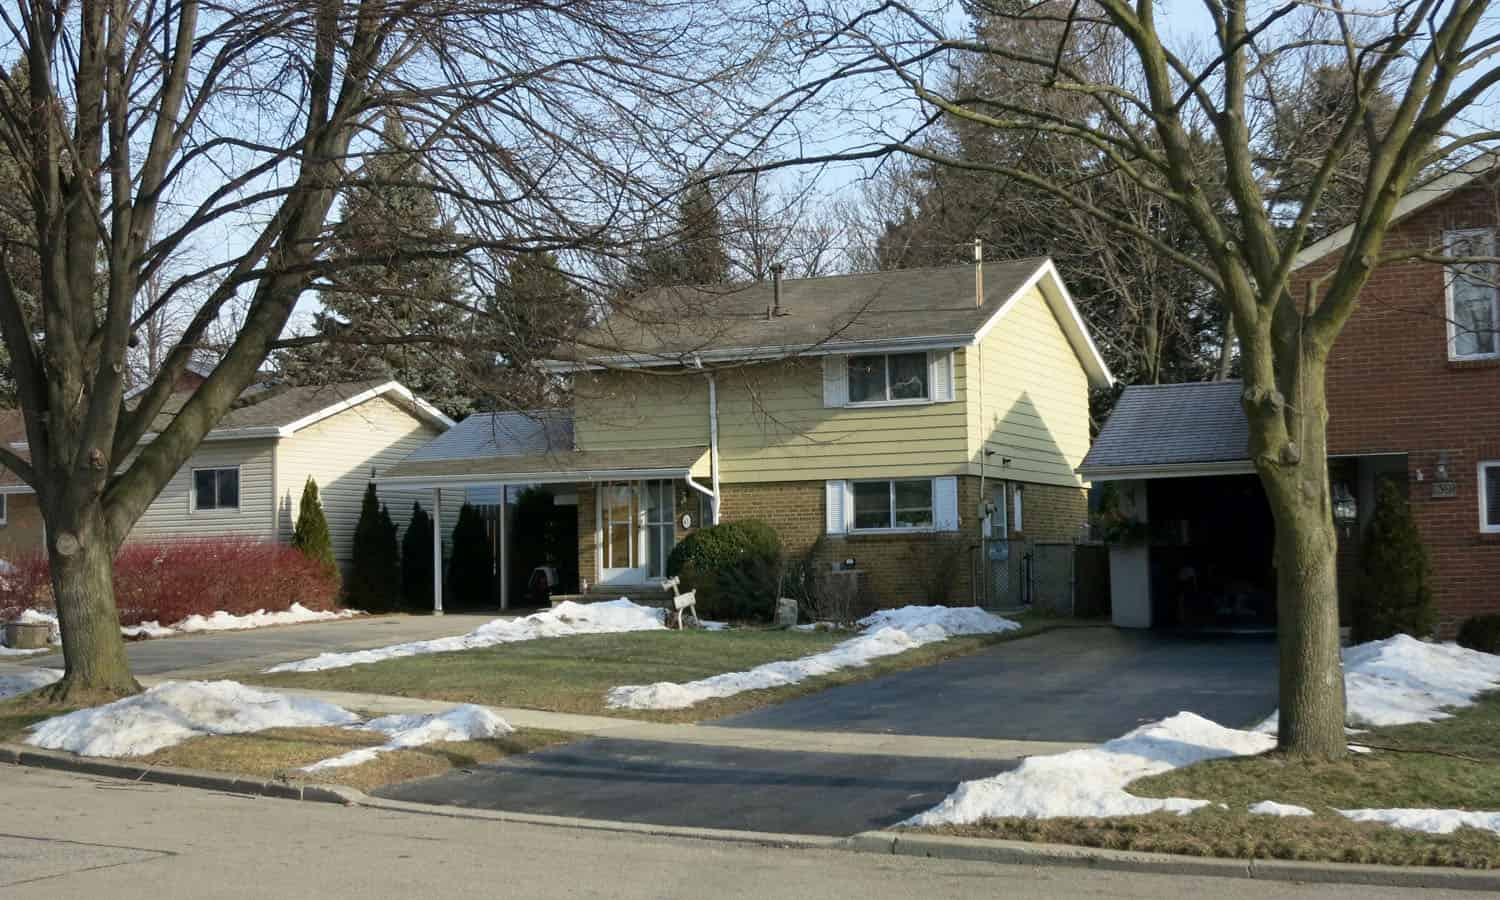 midland park singles Midland park new listings midland park single family homes for sale midland park is an area in midland park, northwest bergen, bergen county, gateway.